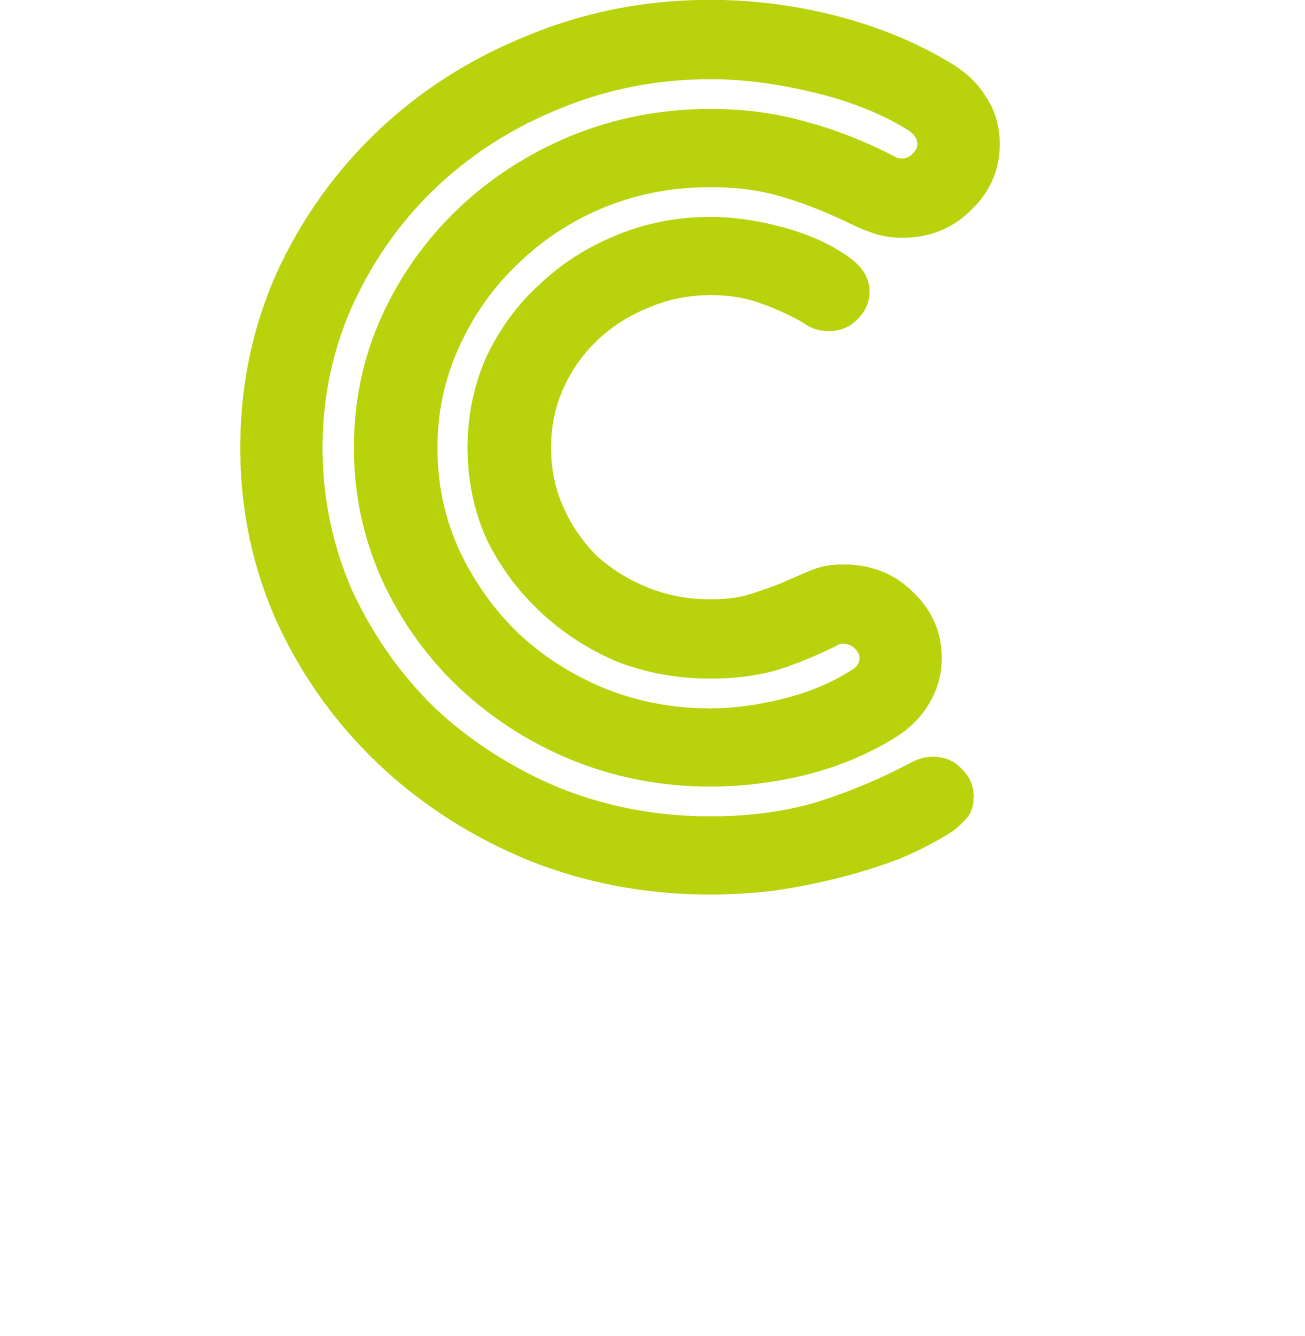 Circuitos - Energy Solutions